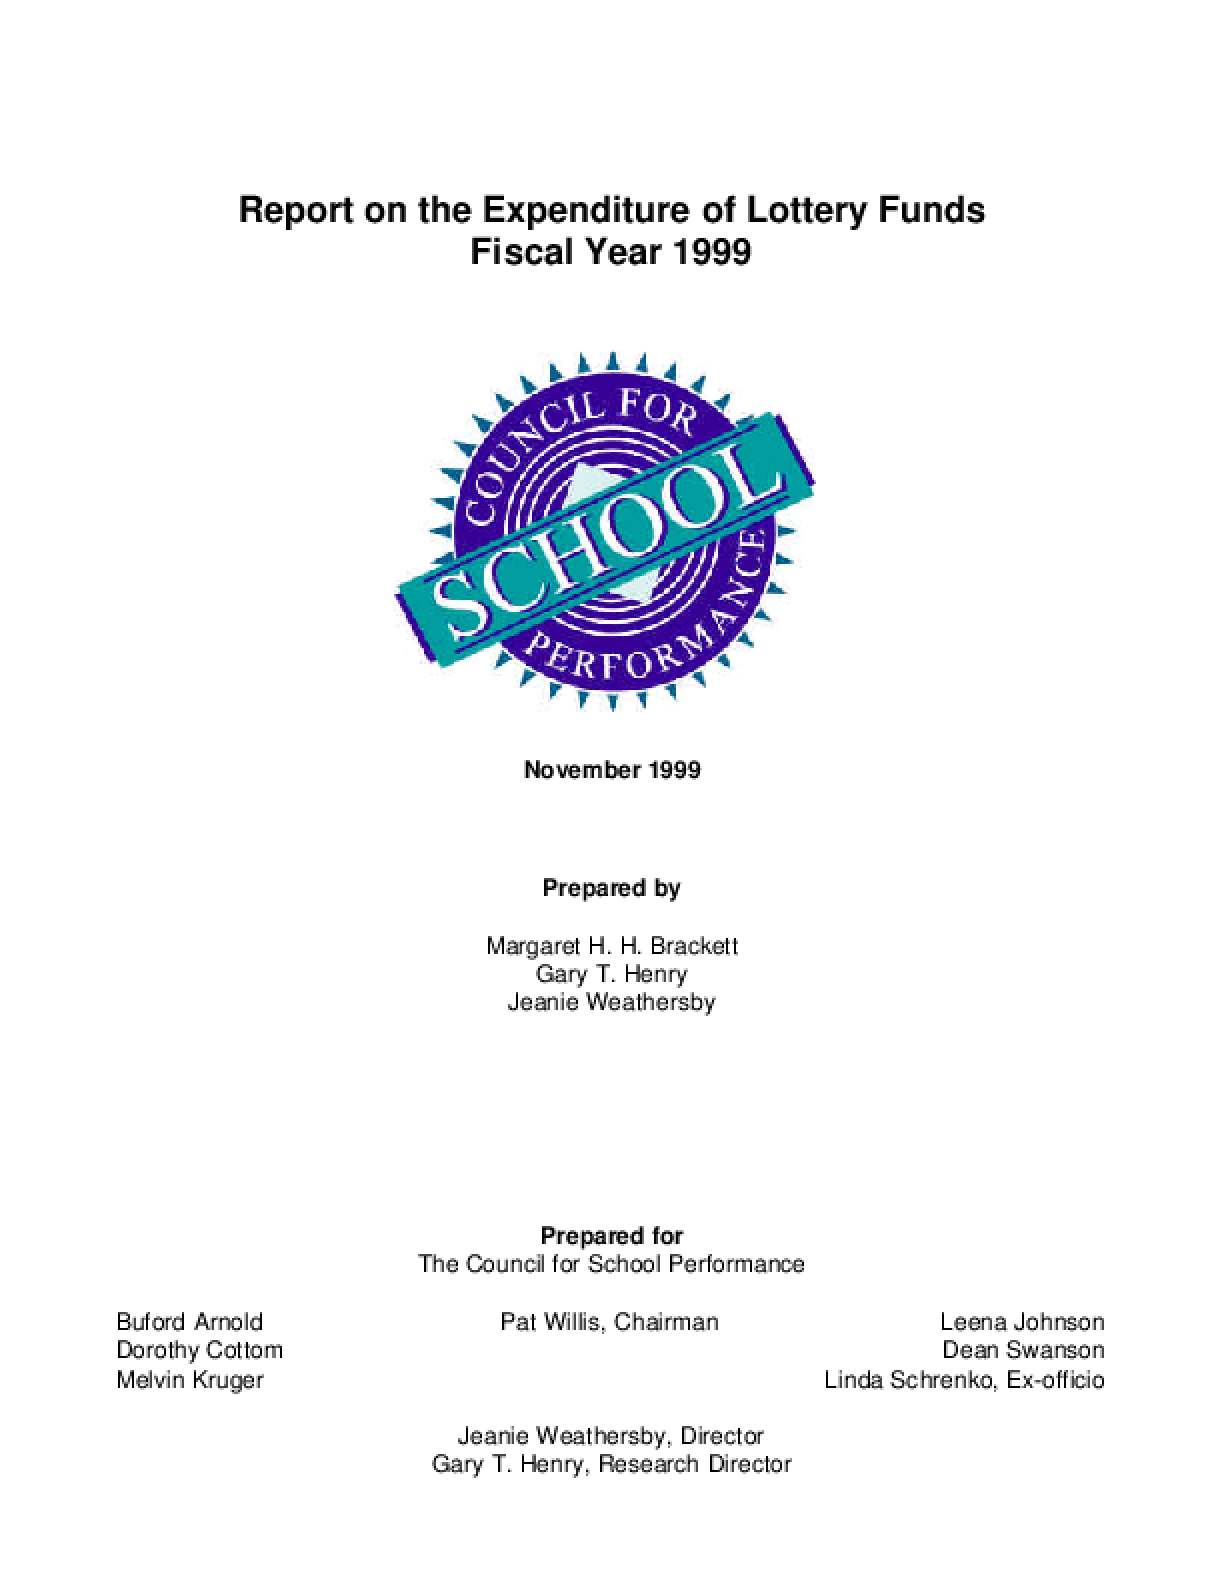 Report on the Expenditure of Lottery Funds Fiscal Year 1999